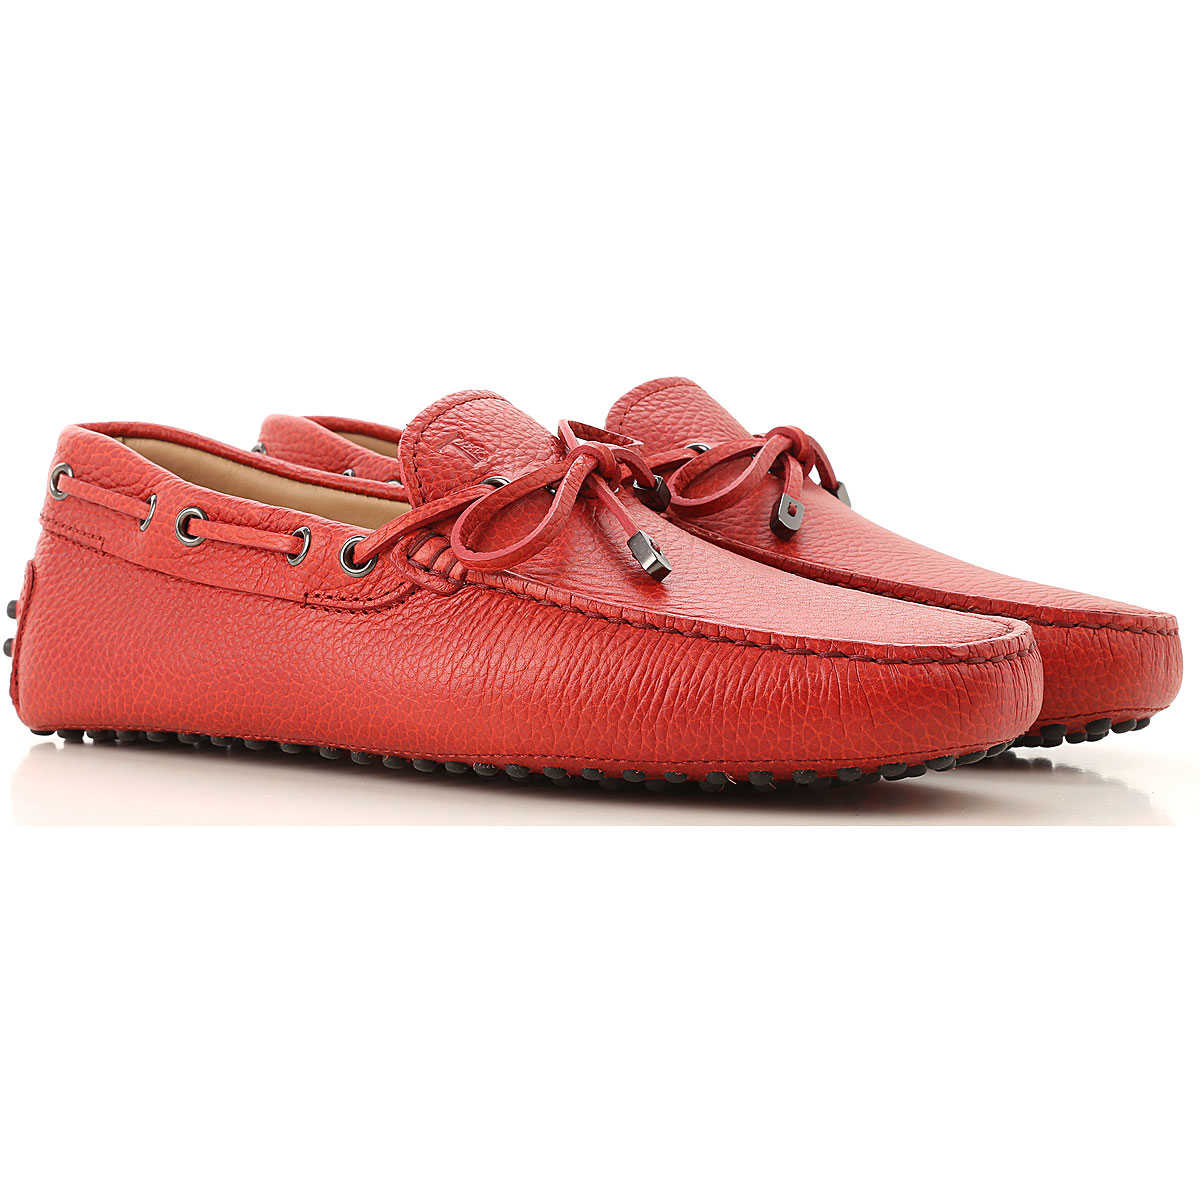 Tods Loafers for Men Red USA - GOOFASH